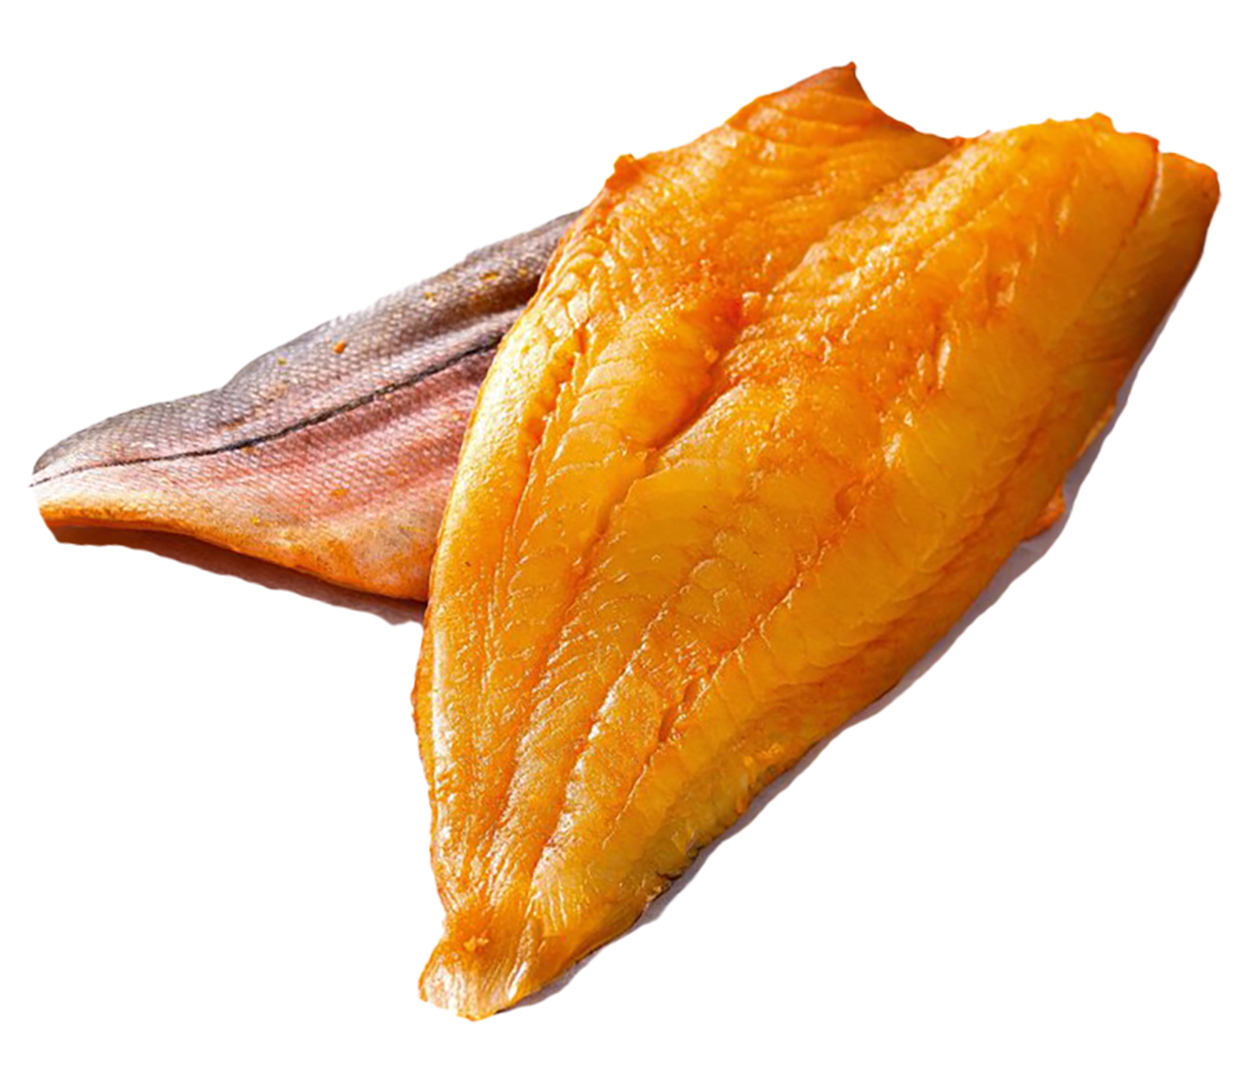 Productafbeelding HADDOCK FILLET SMOKED, PACKAGING: 200GR.